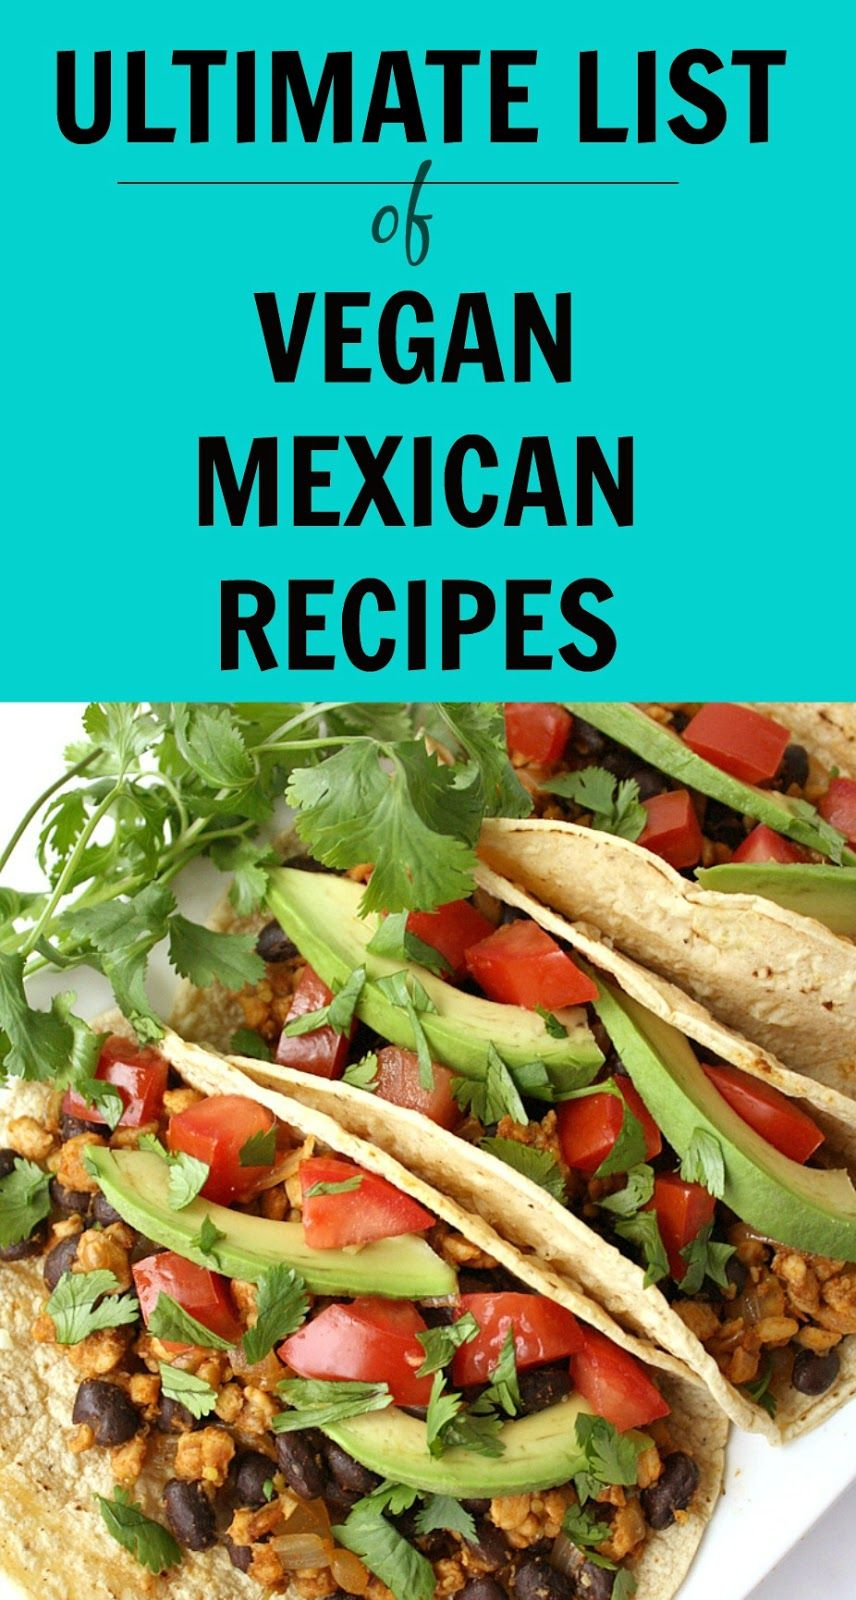 Ultimate List Of Vegan Mexican Recipes Vegetarianvegan